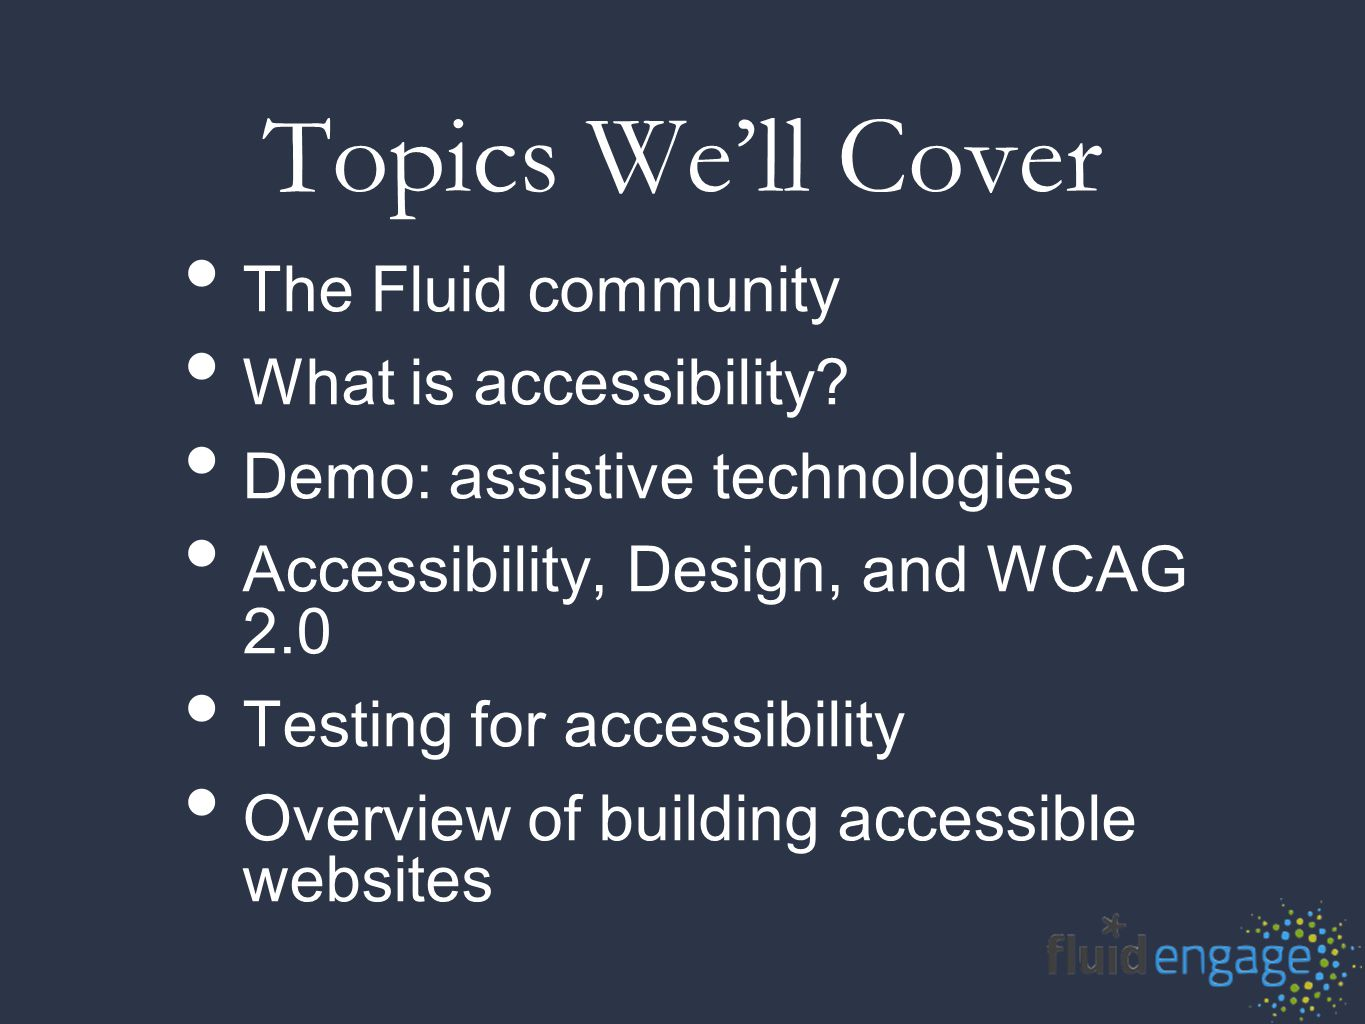 Tools for Evaluating Accessibility